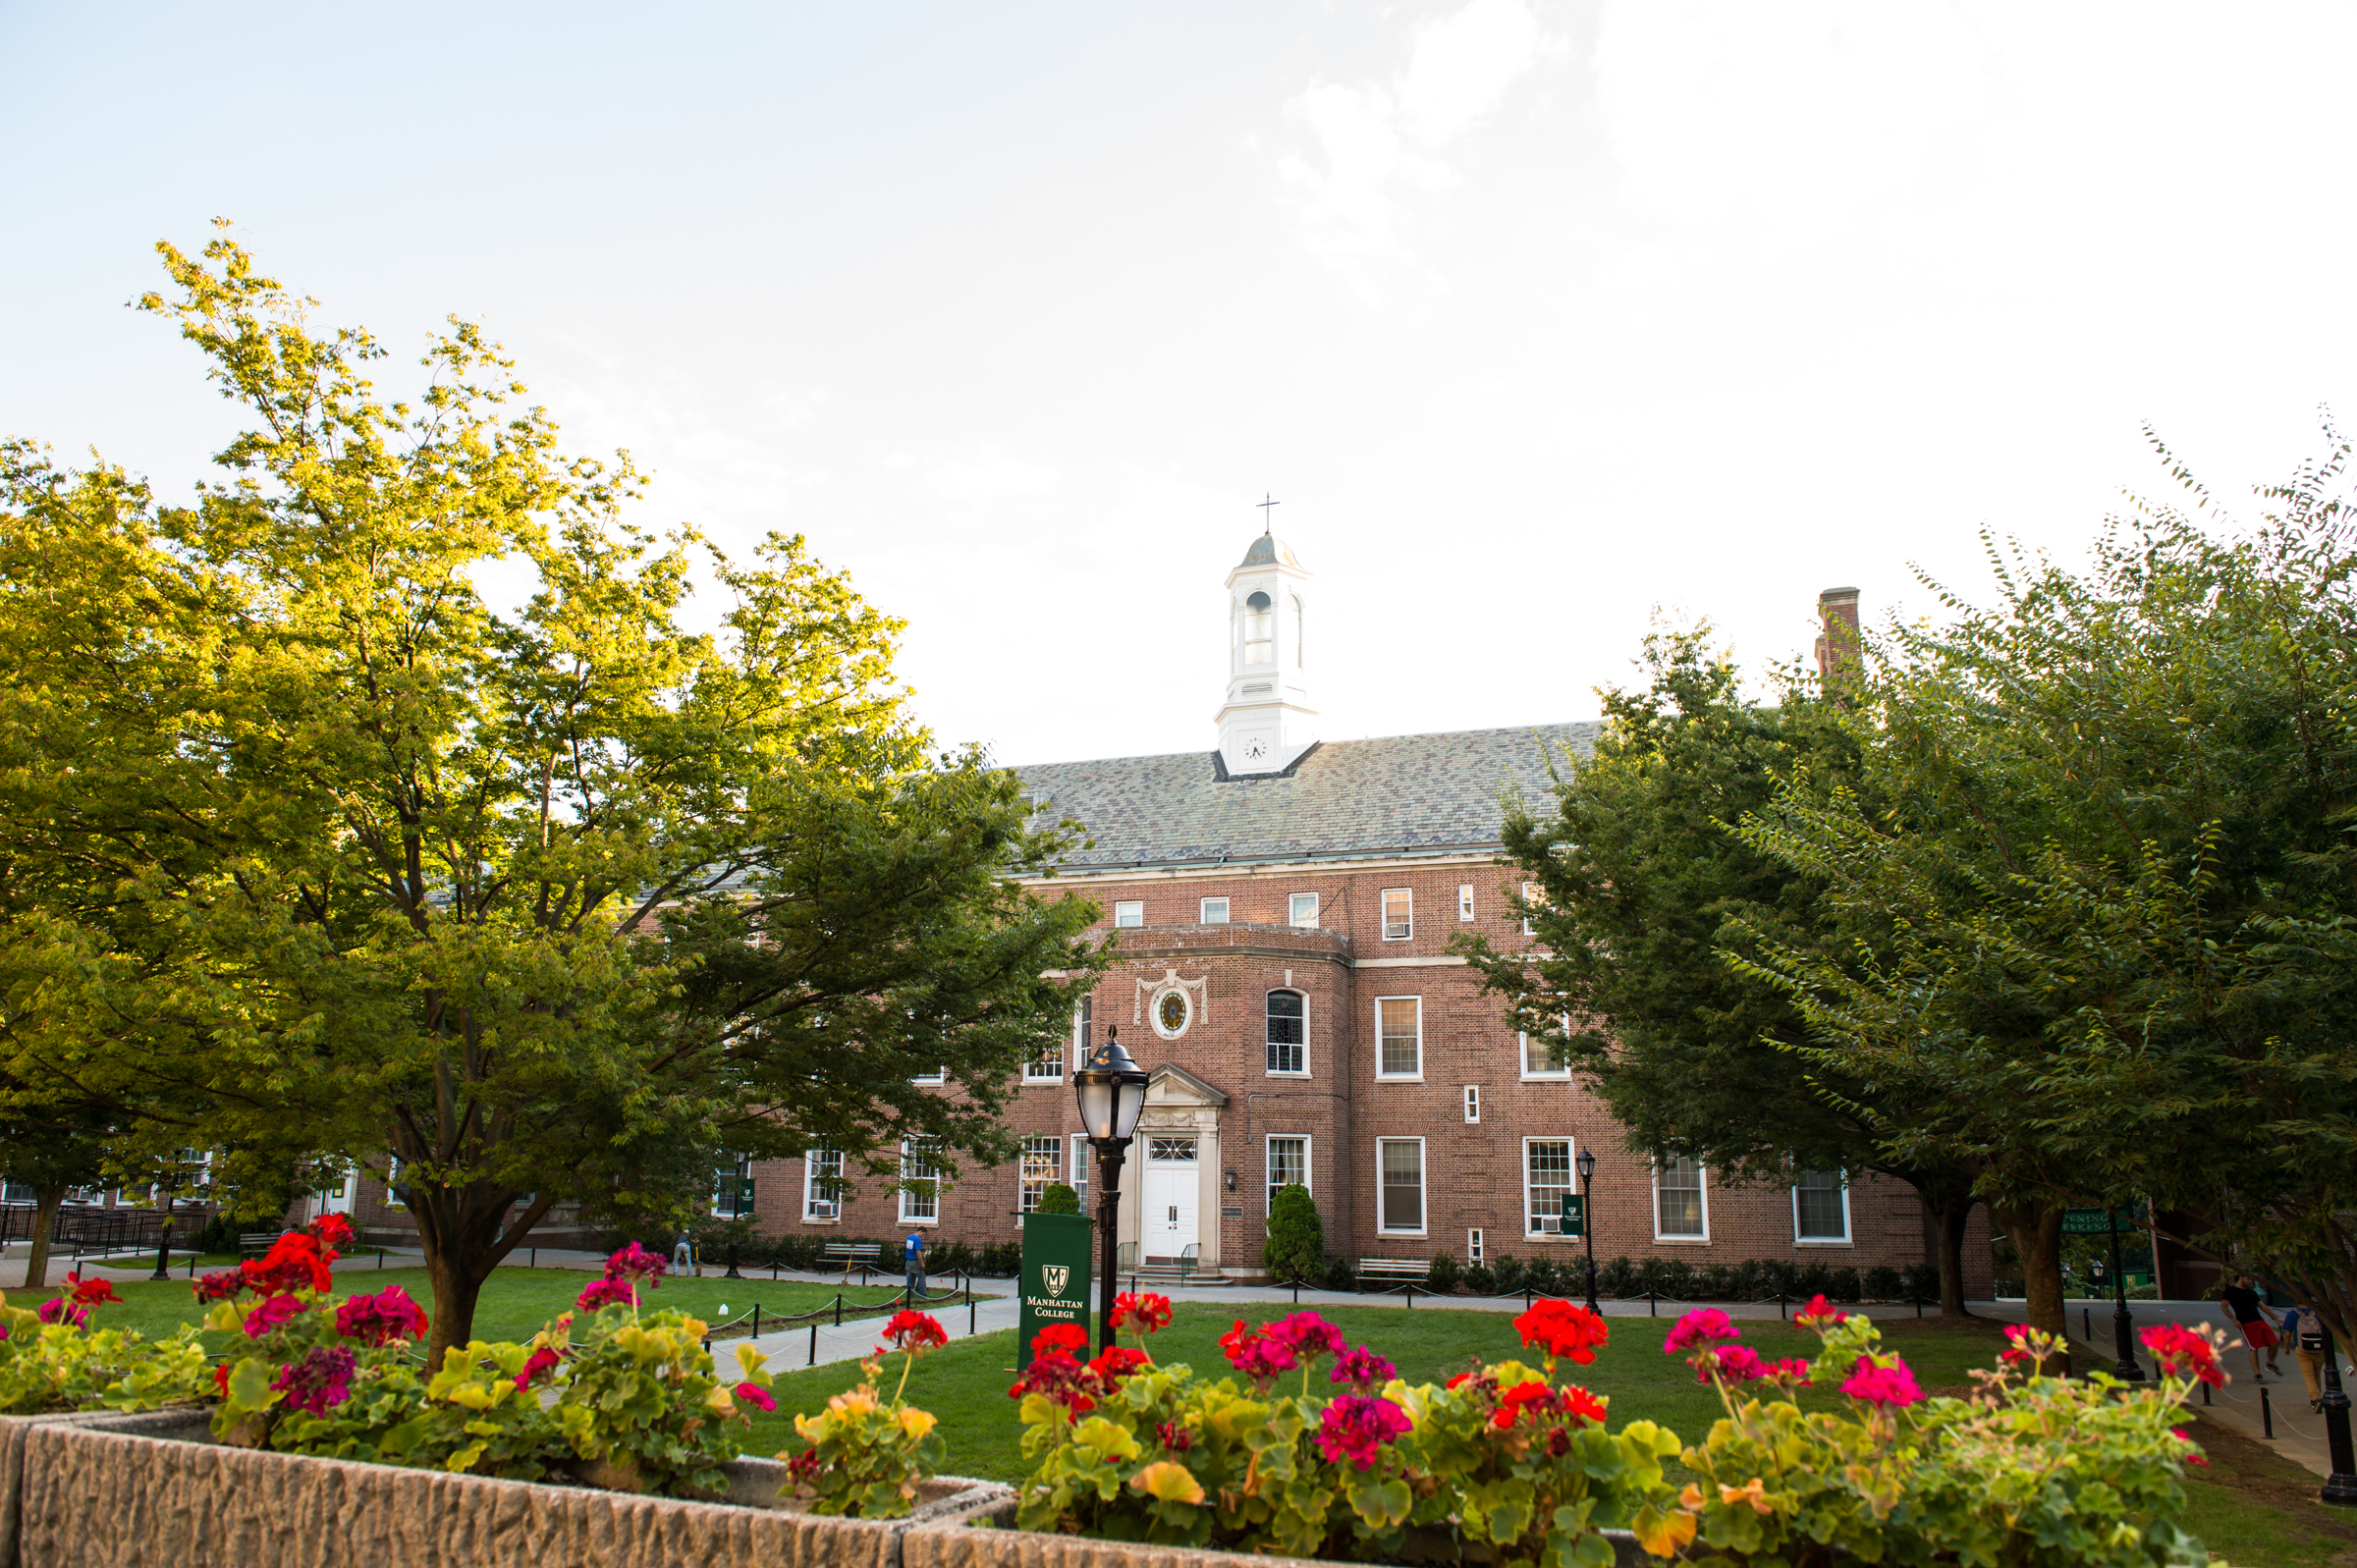 Manhattan College's quad with trees and flowers in bloom.